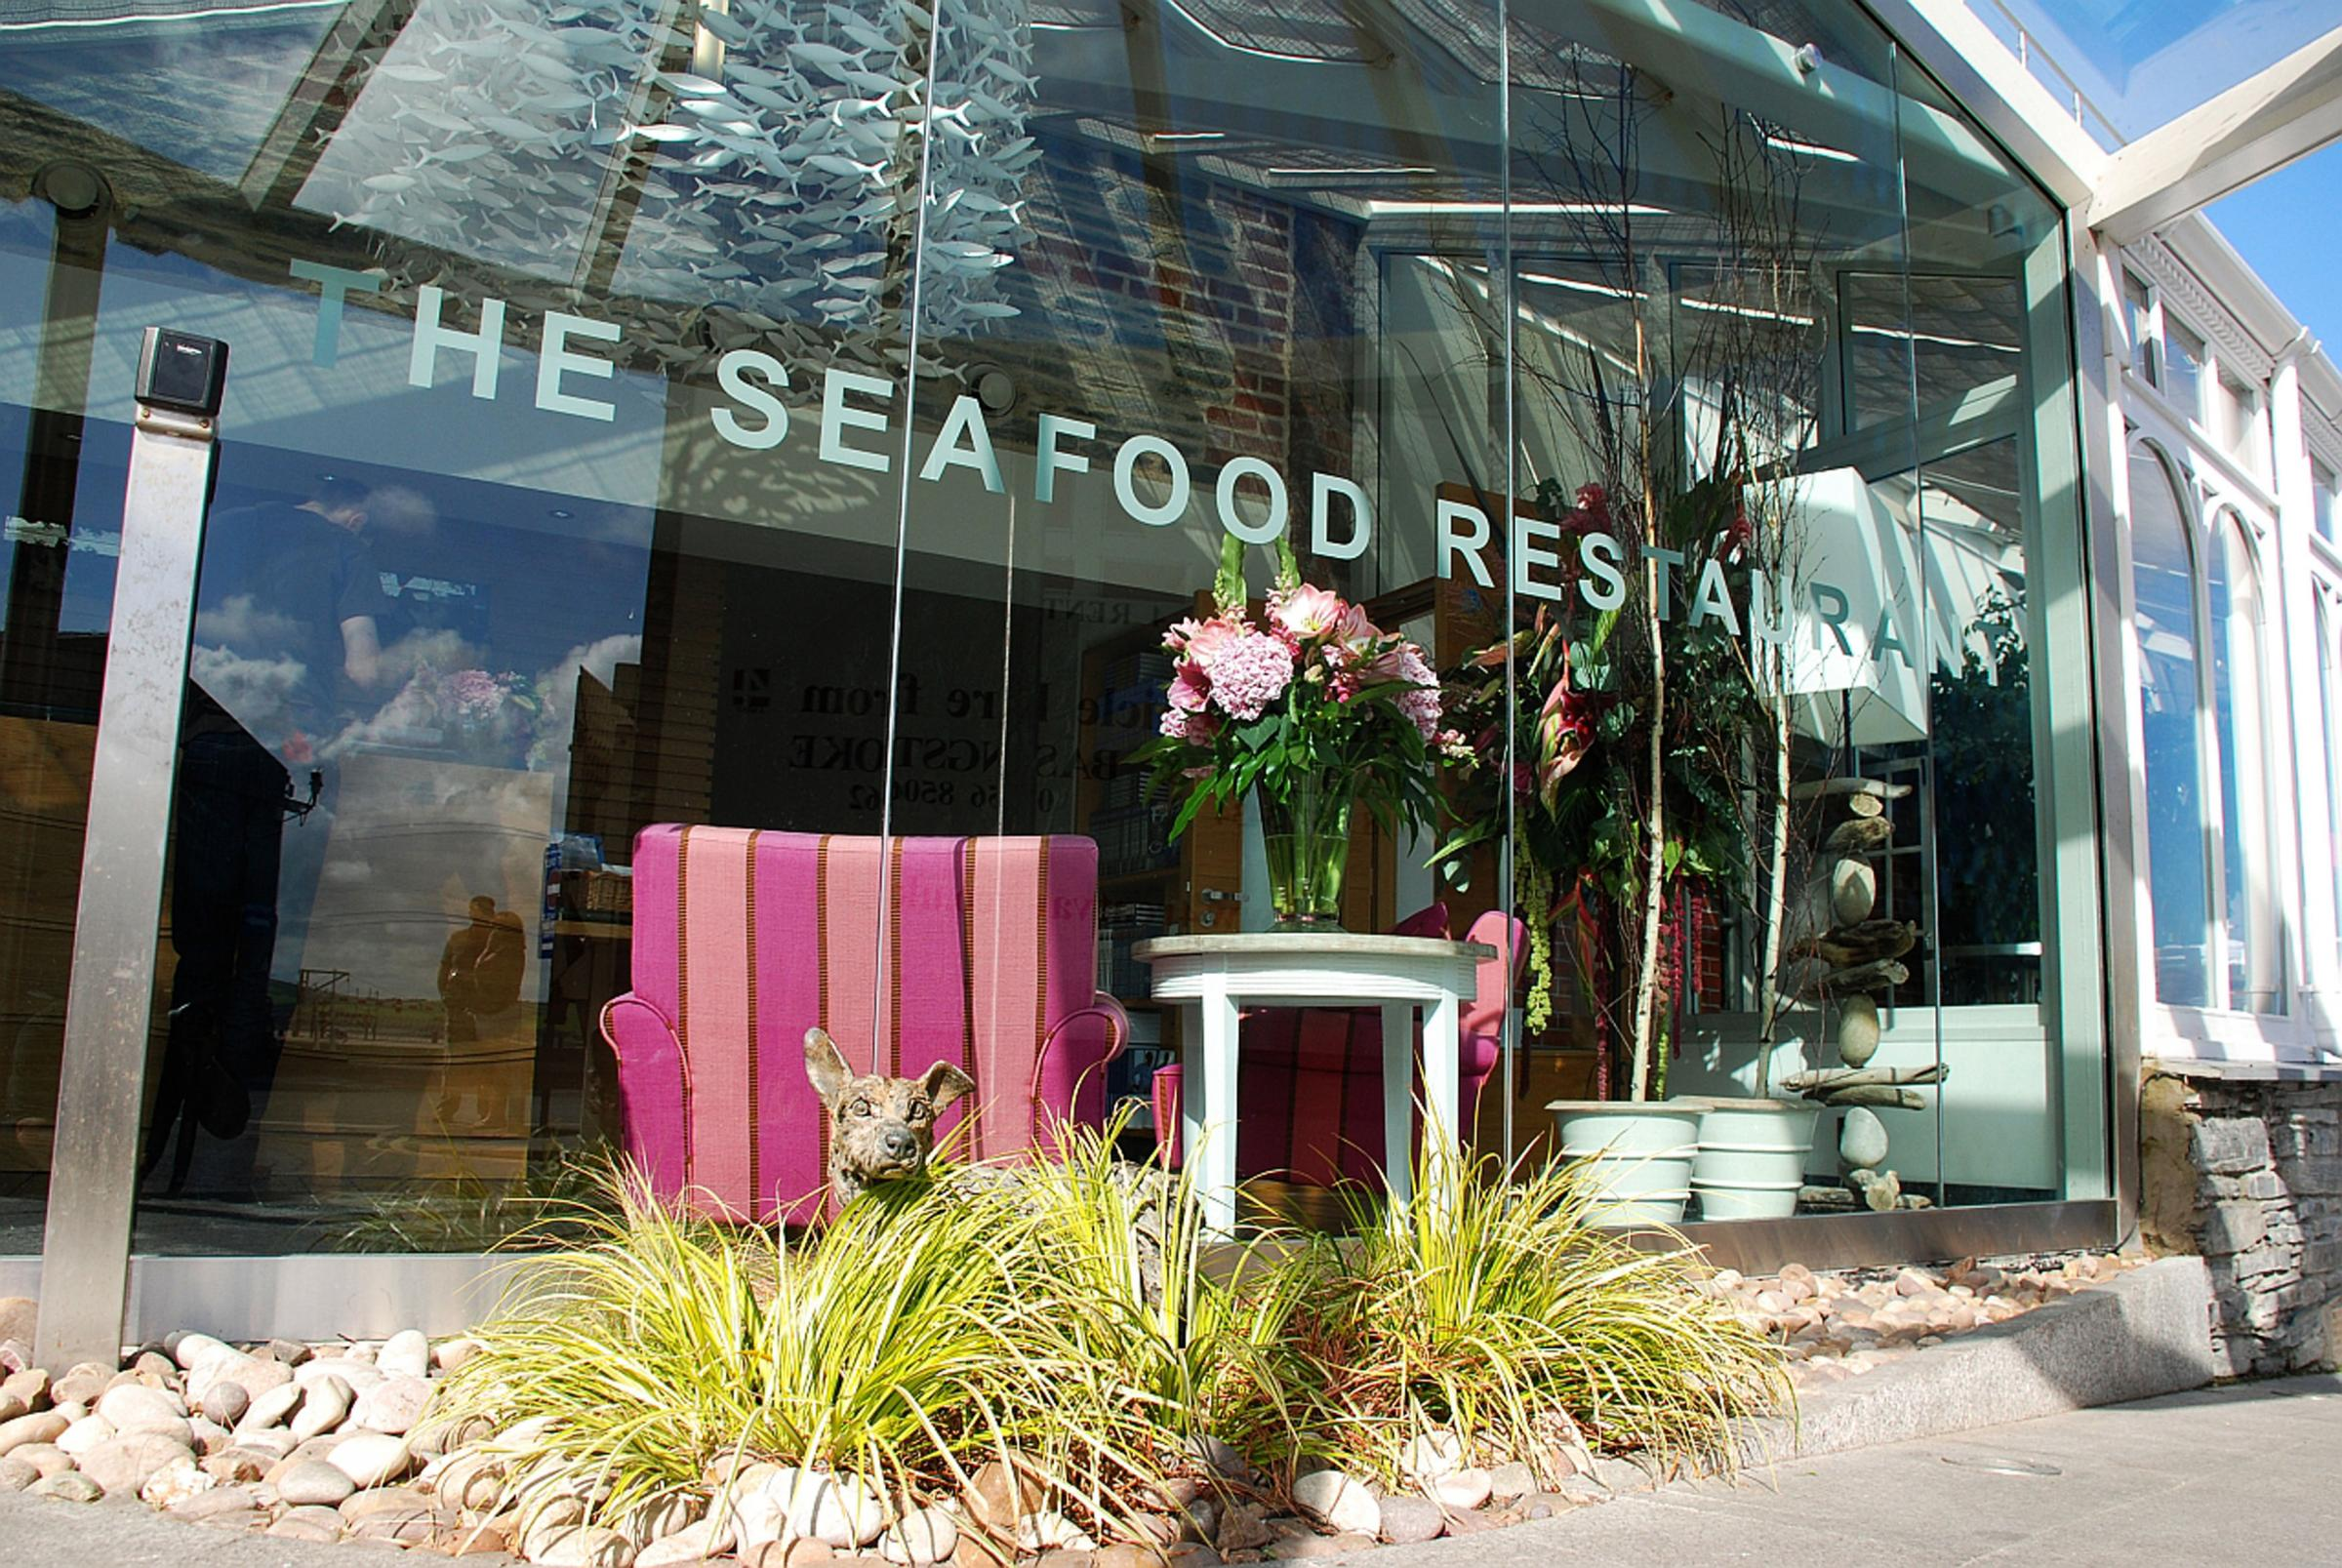 The Seafood Restaurant, Padstow